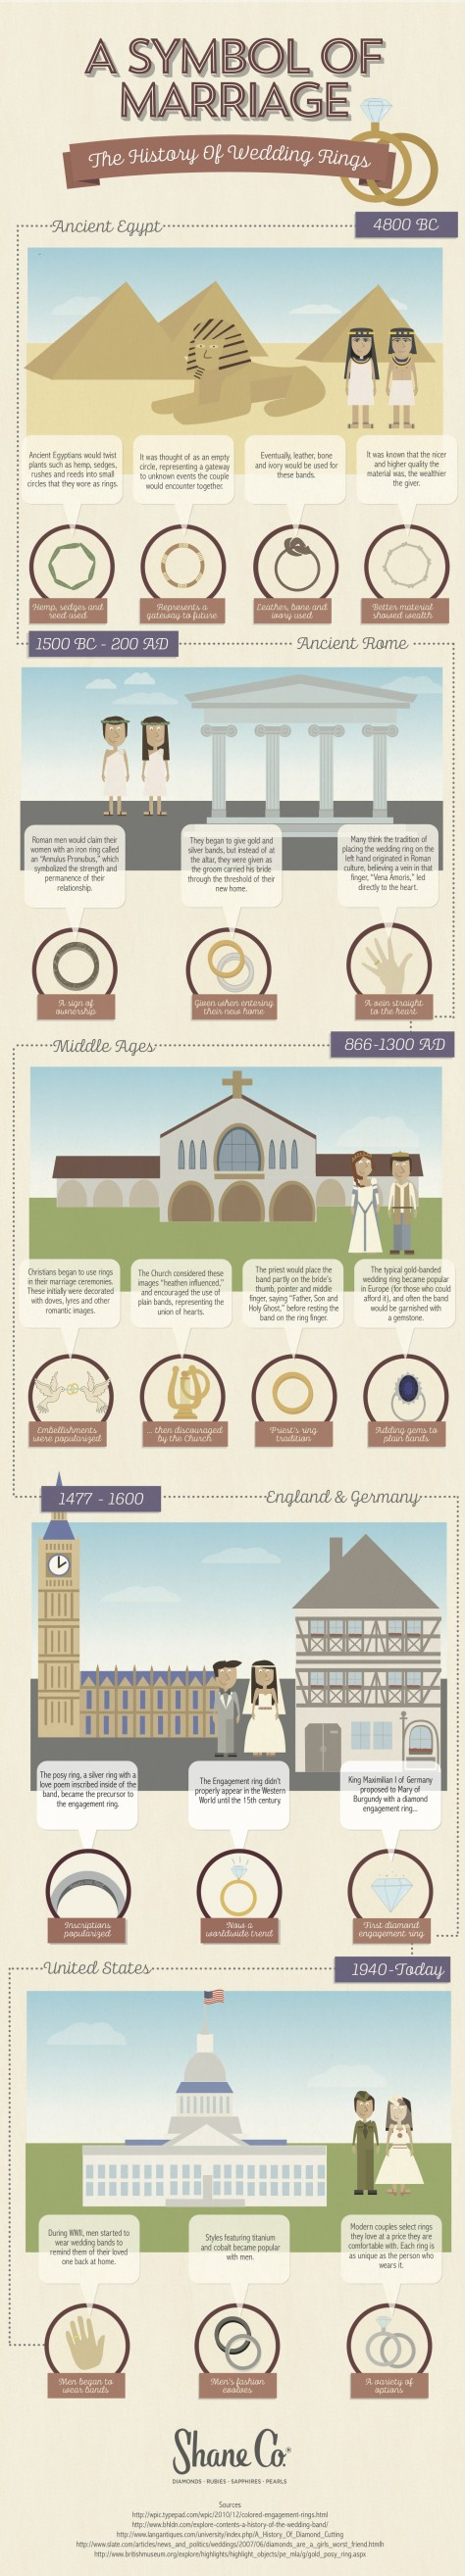 History of Wedding Rings